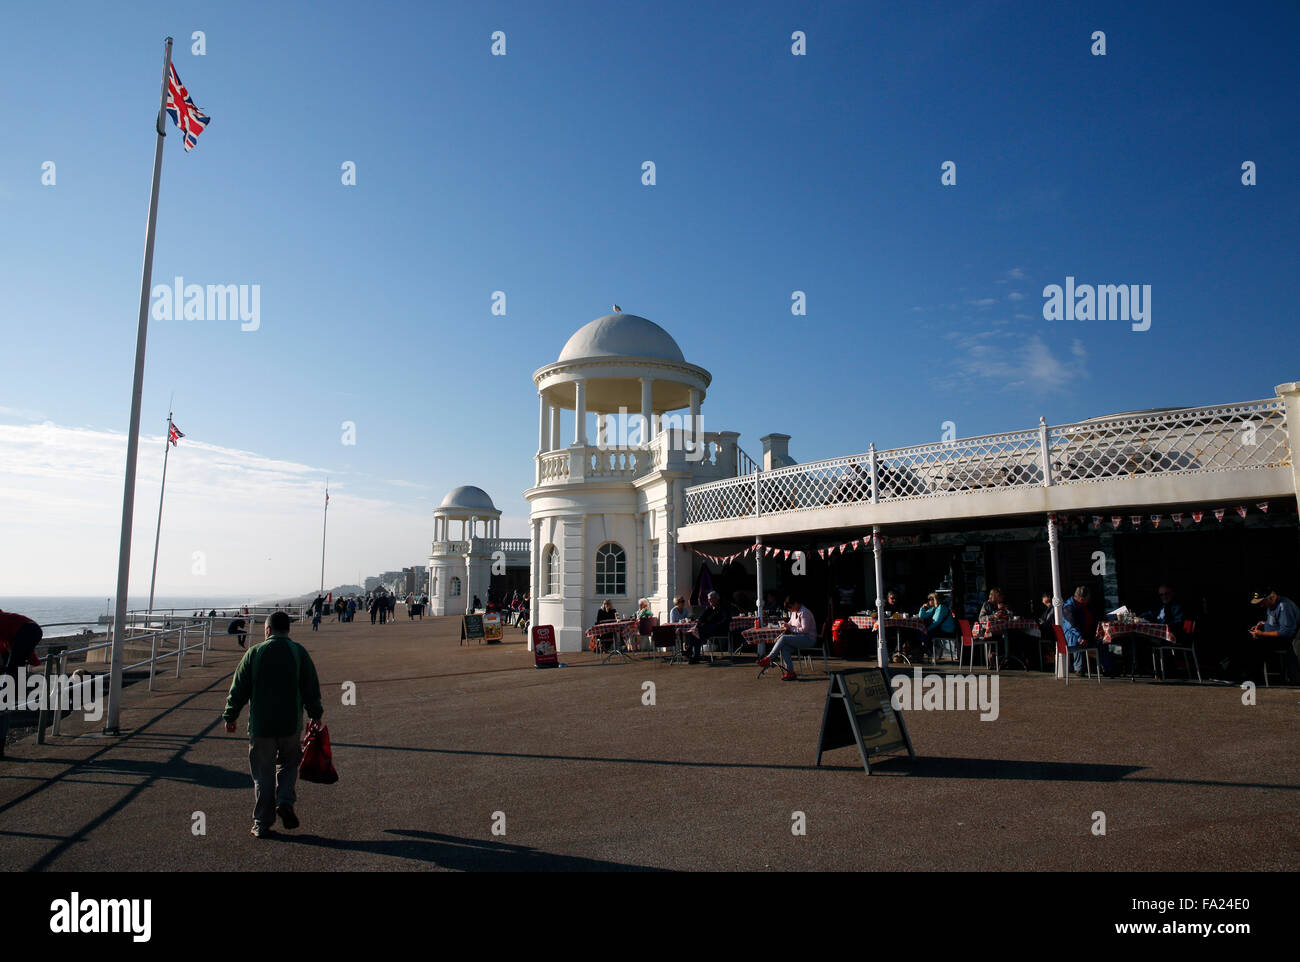 A general view of De La Warr pavilion Bexhill on Sea East Sussex in England October 2015 Stock Photo